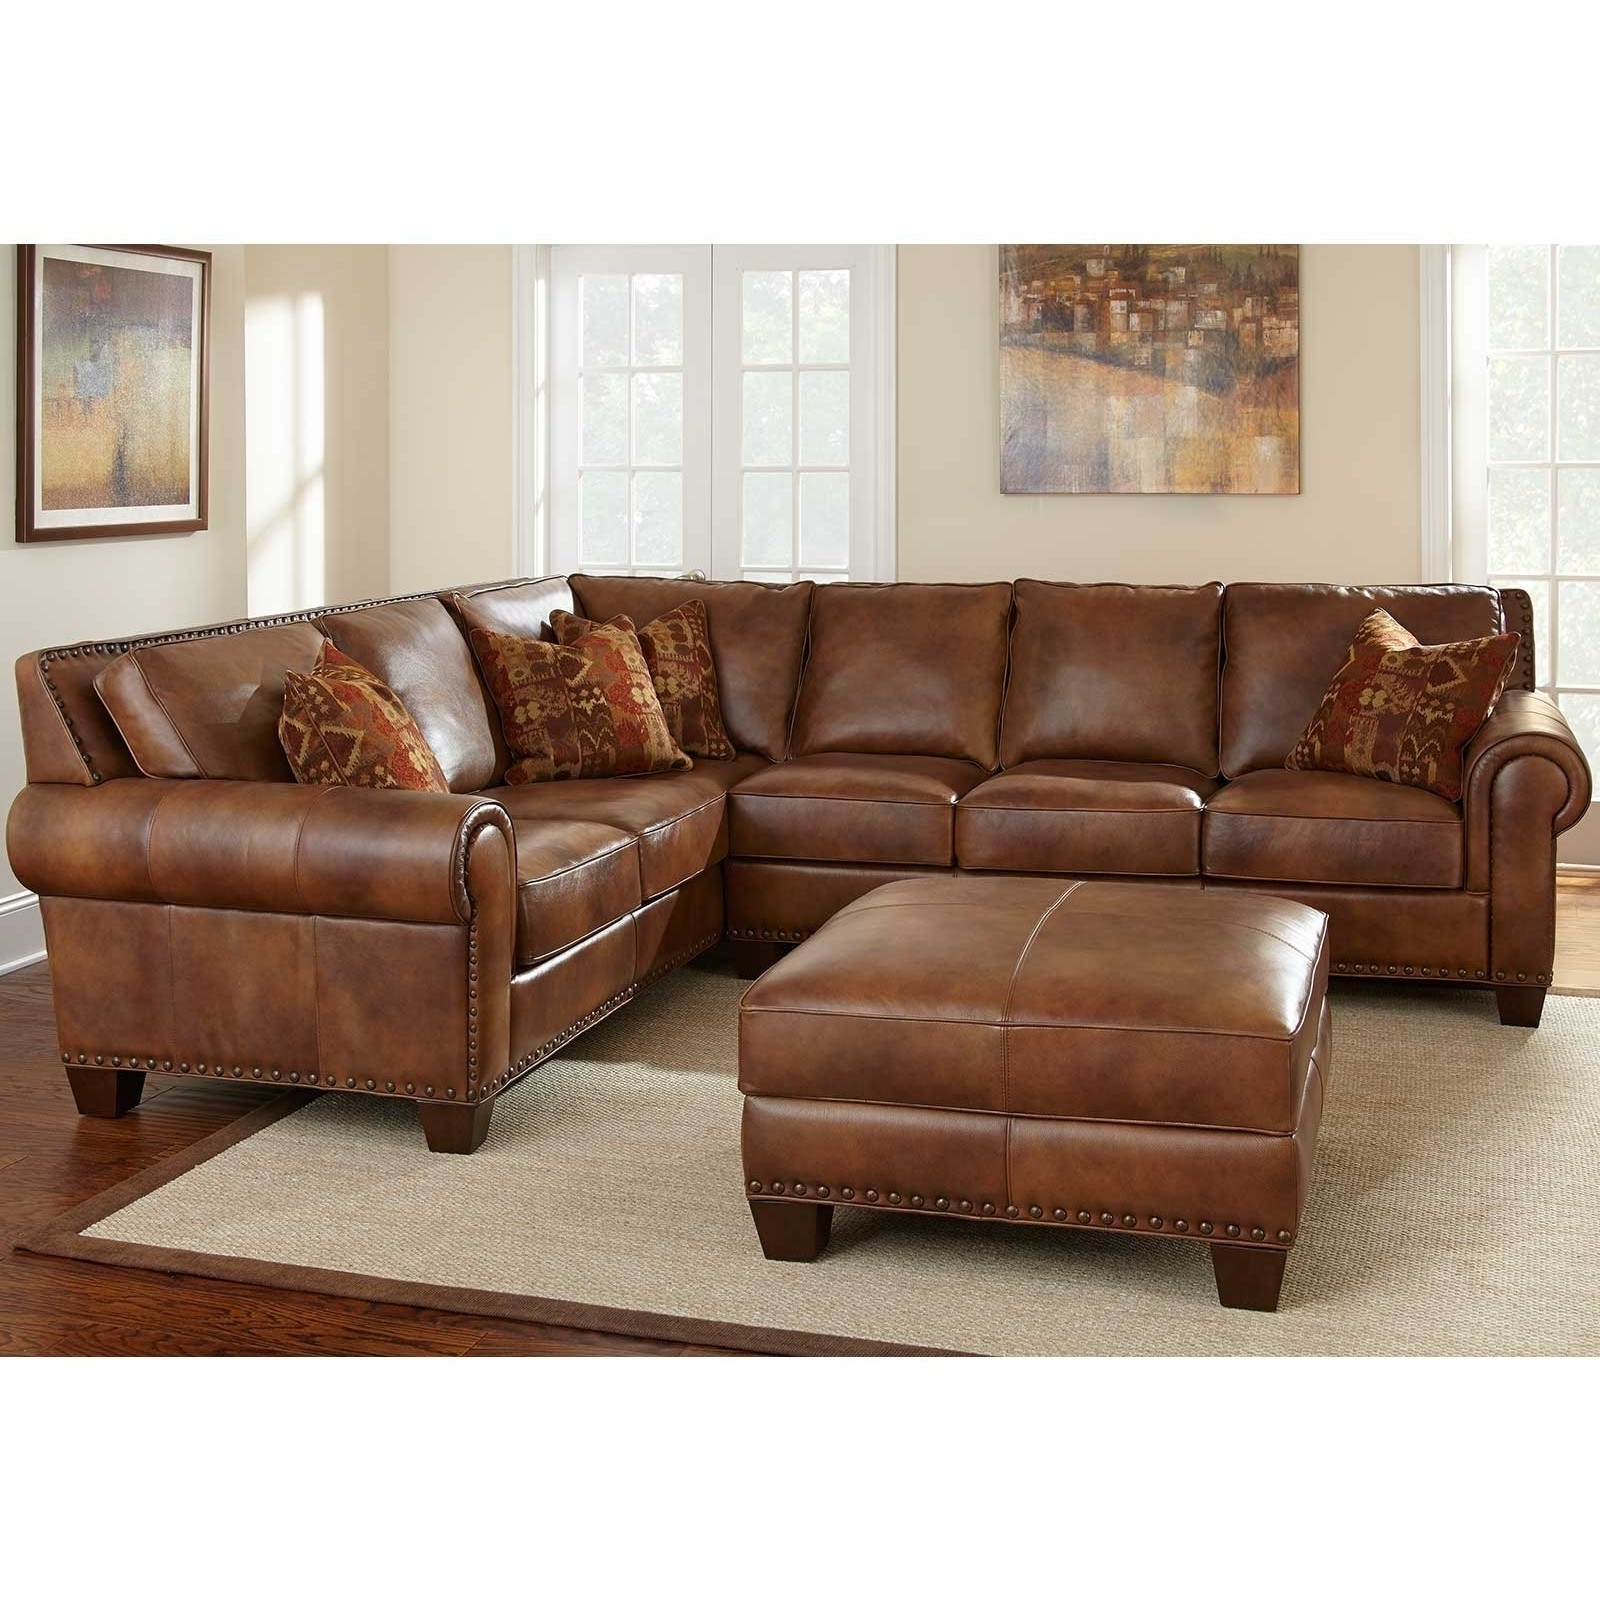 Famous Macys Leather Sectional Sofas Intended For White Leather Sectional Sofa Macy's • Leather Sofa (View 12 of 15)